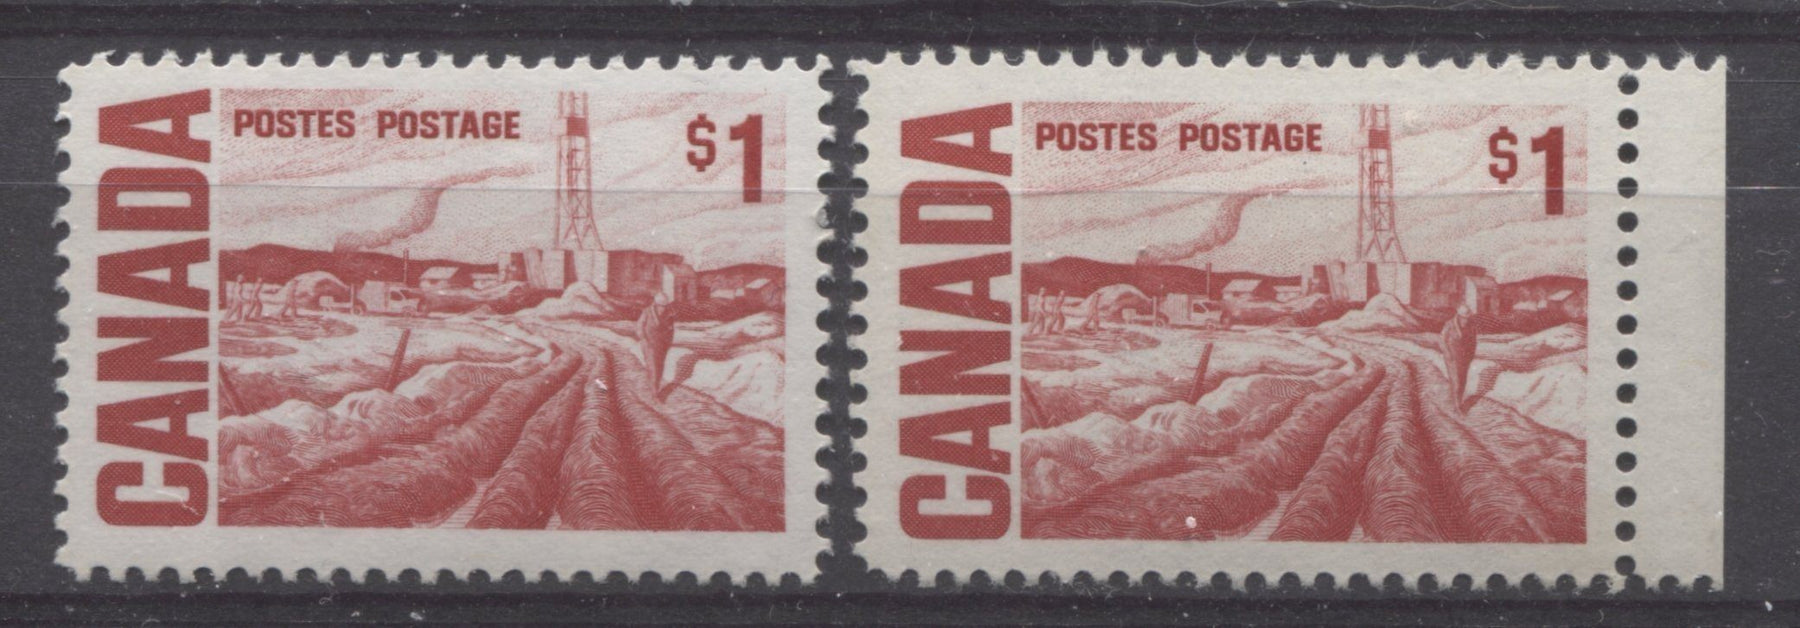 The $1 Edmonton Oilfield Stamp From the 1967-1973 Centennial Issue